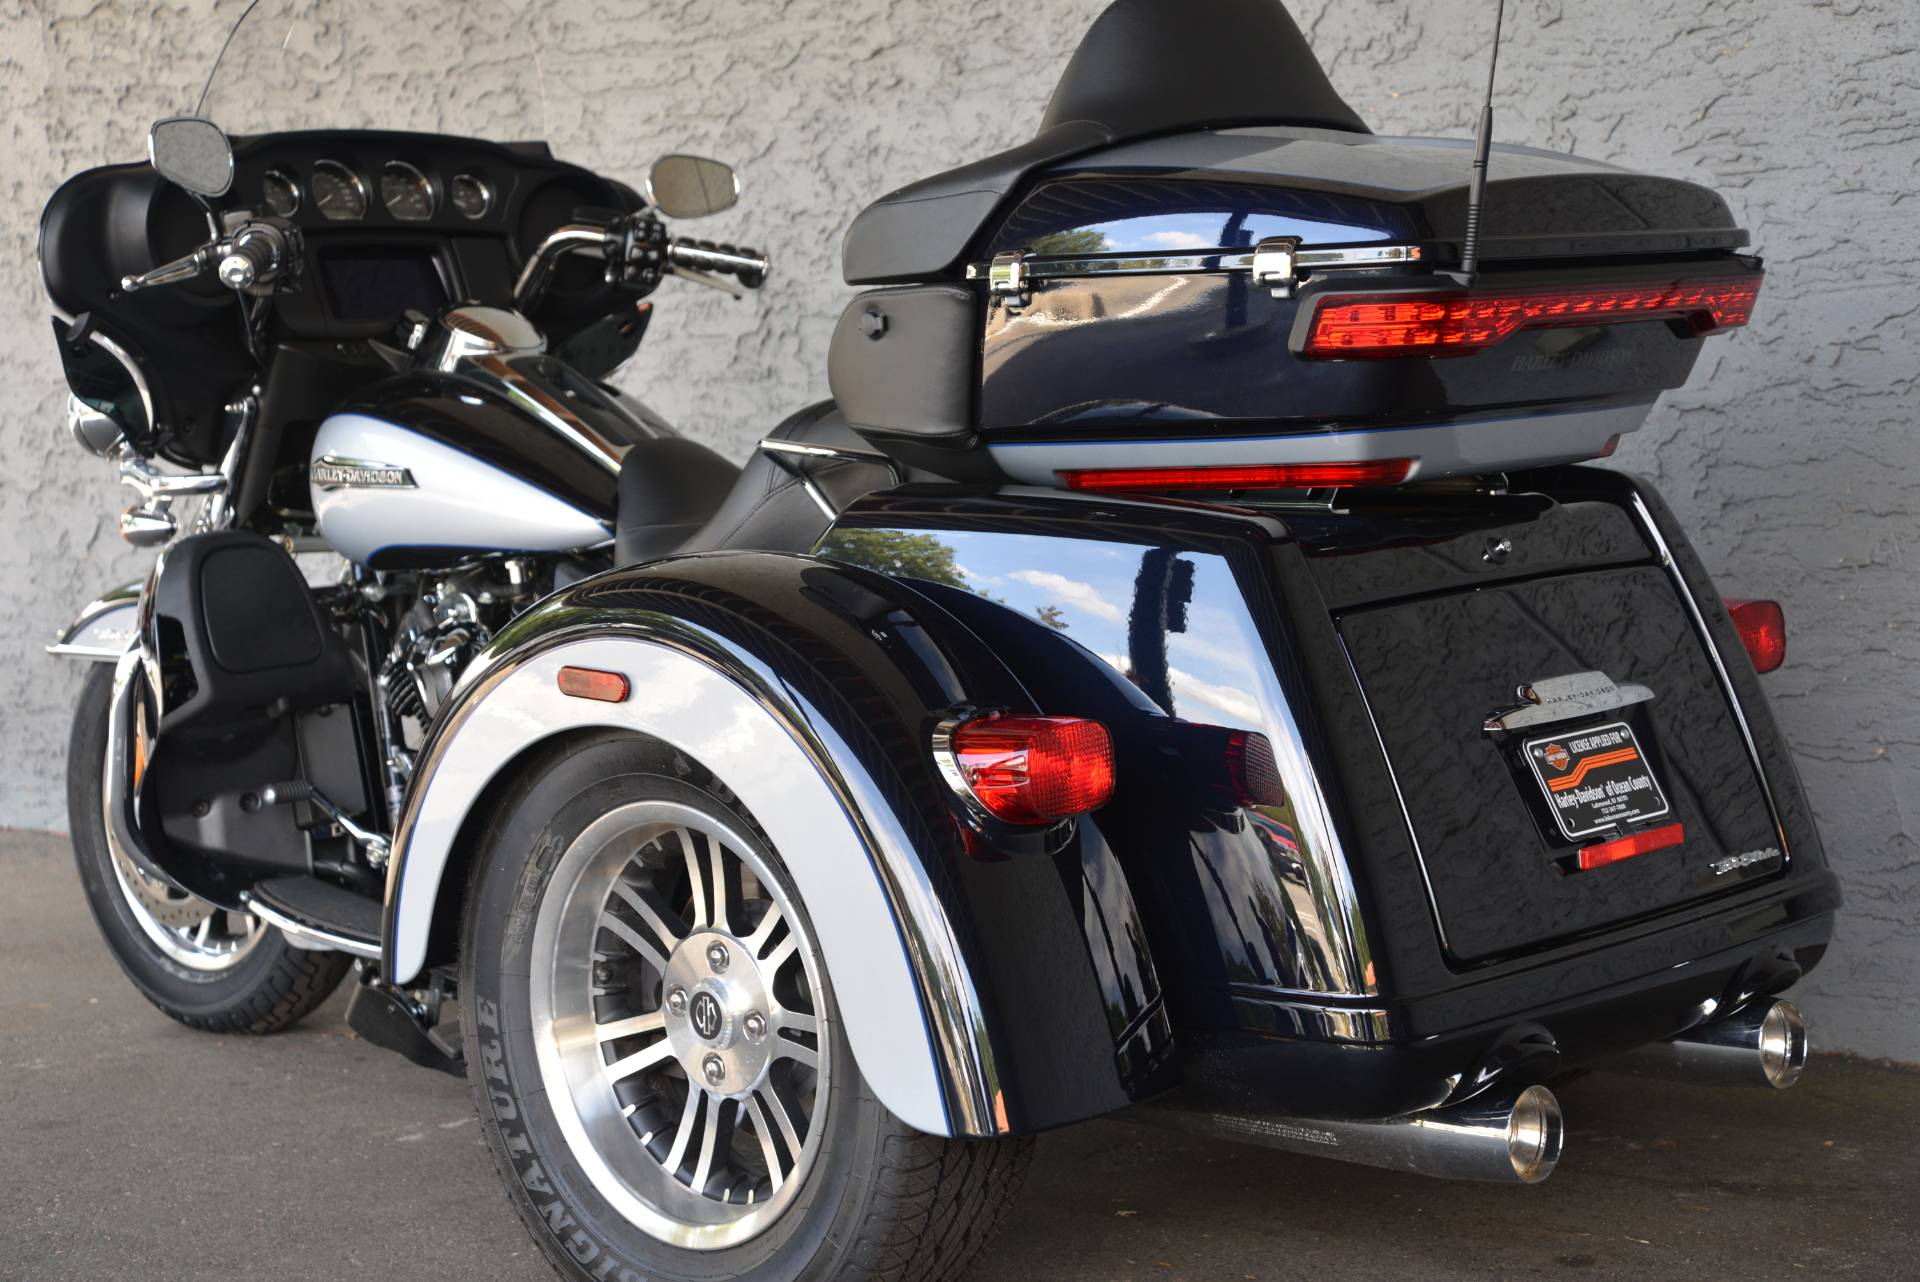 2019 Harley-Davidson TRI GLIDE ULTRA in Lakewood, New Jersey - Photo 14